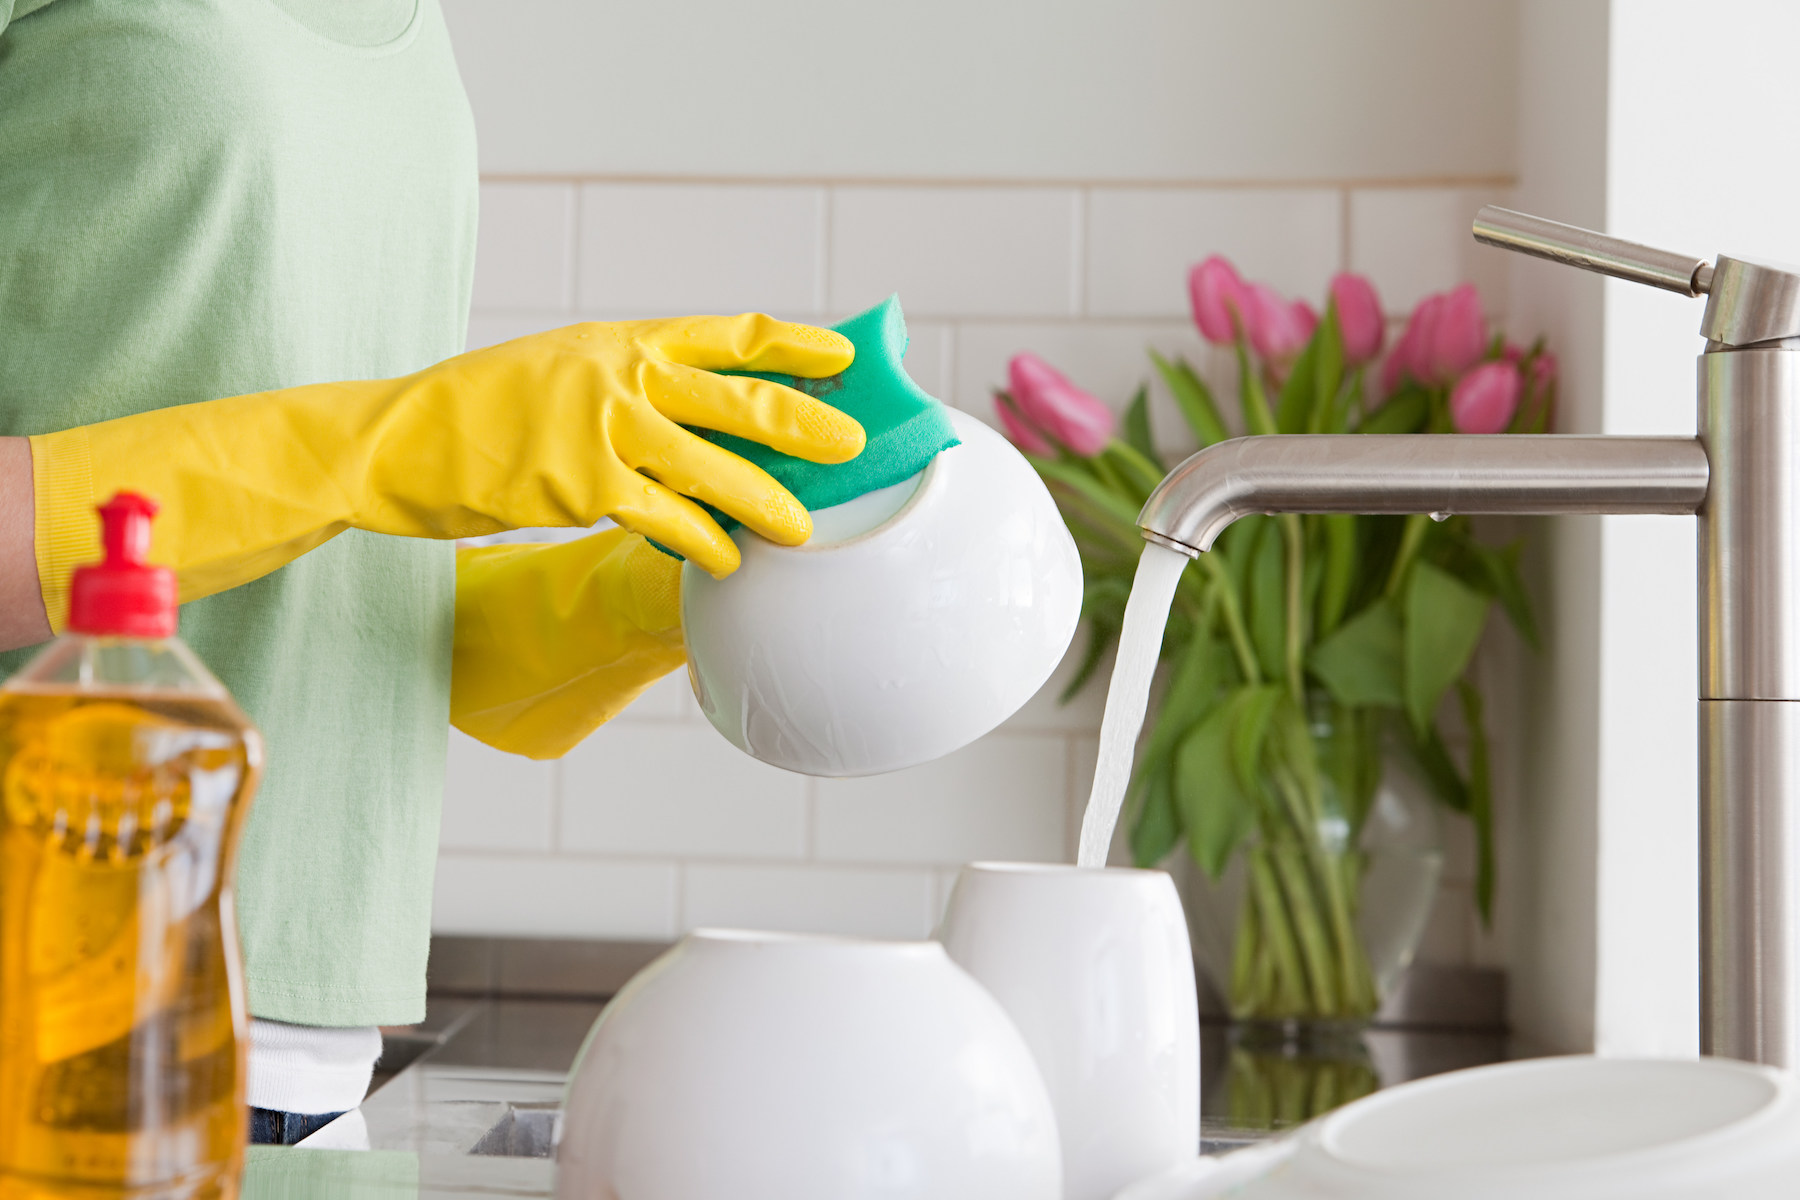 Woman washing dishes with sponge and flowers